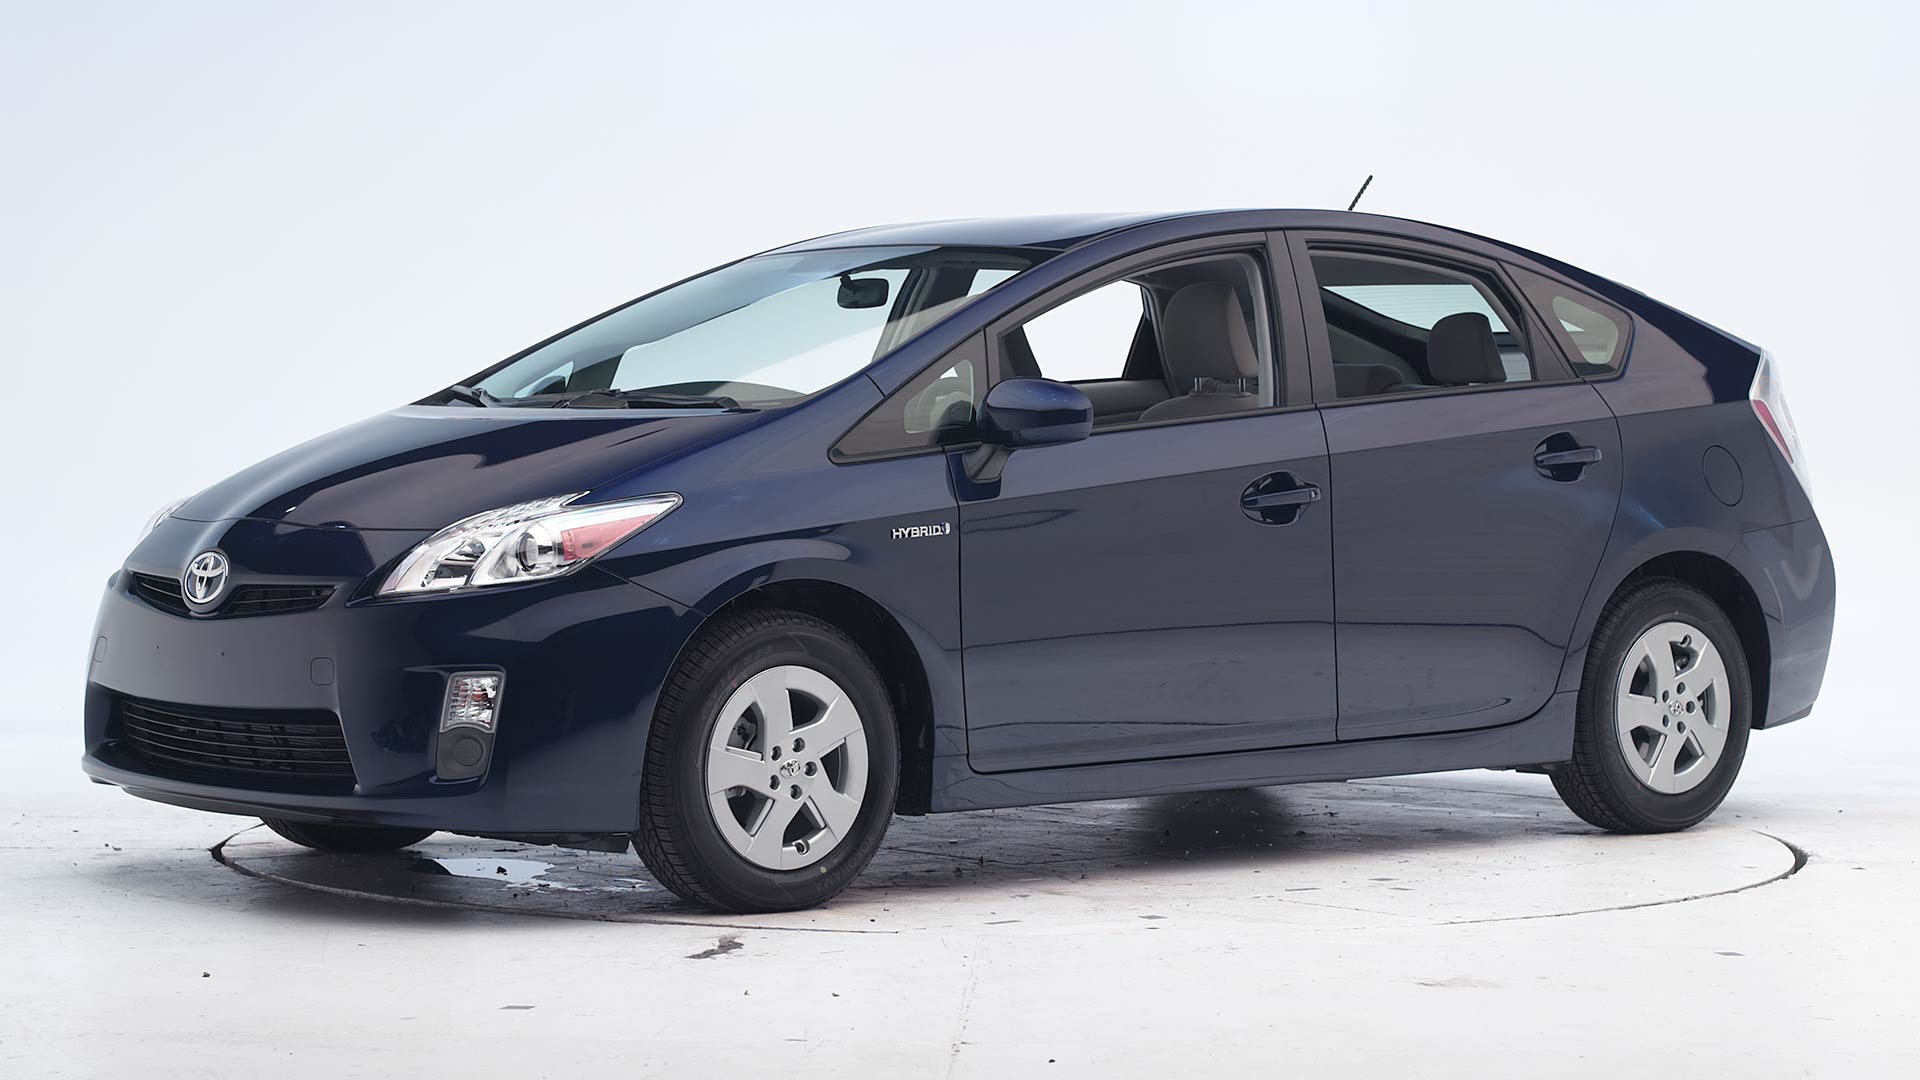 How much cargo space does the toyota prius v have? 2011 Toyota Prius